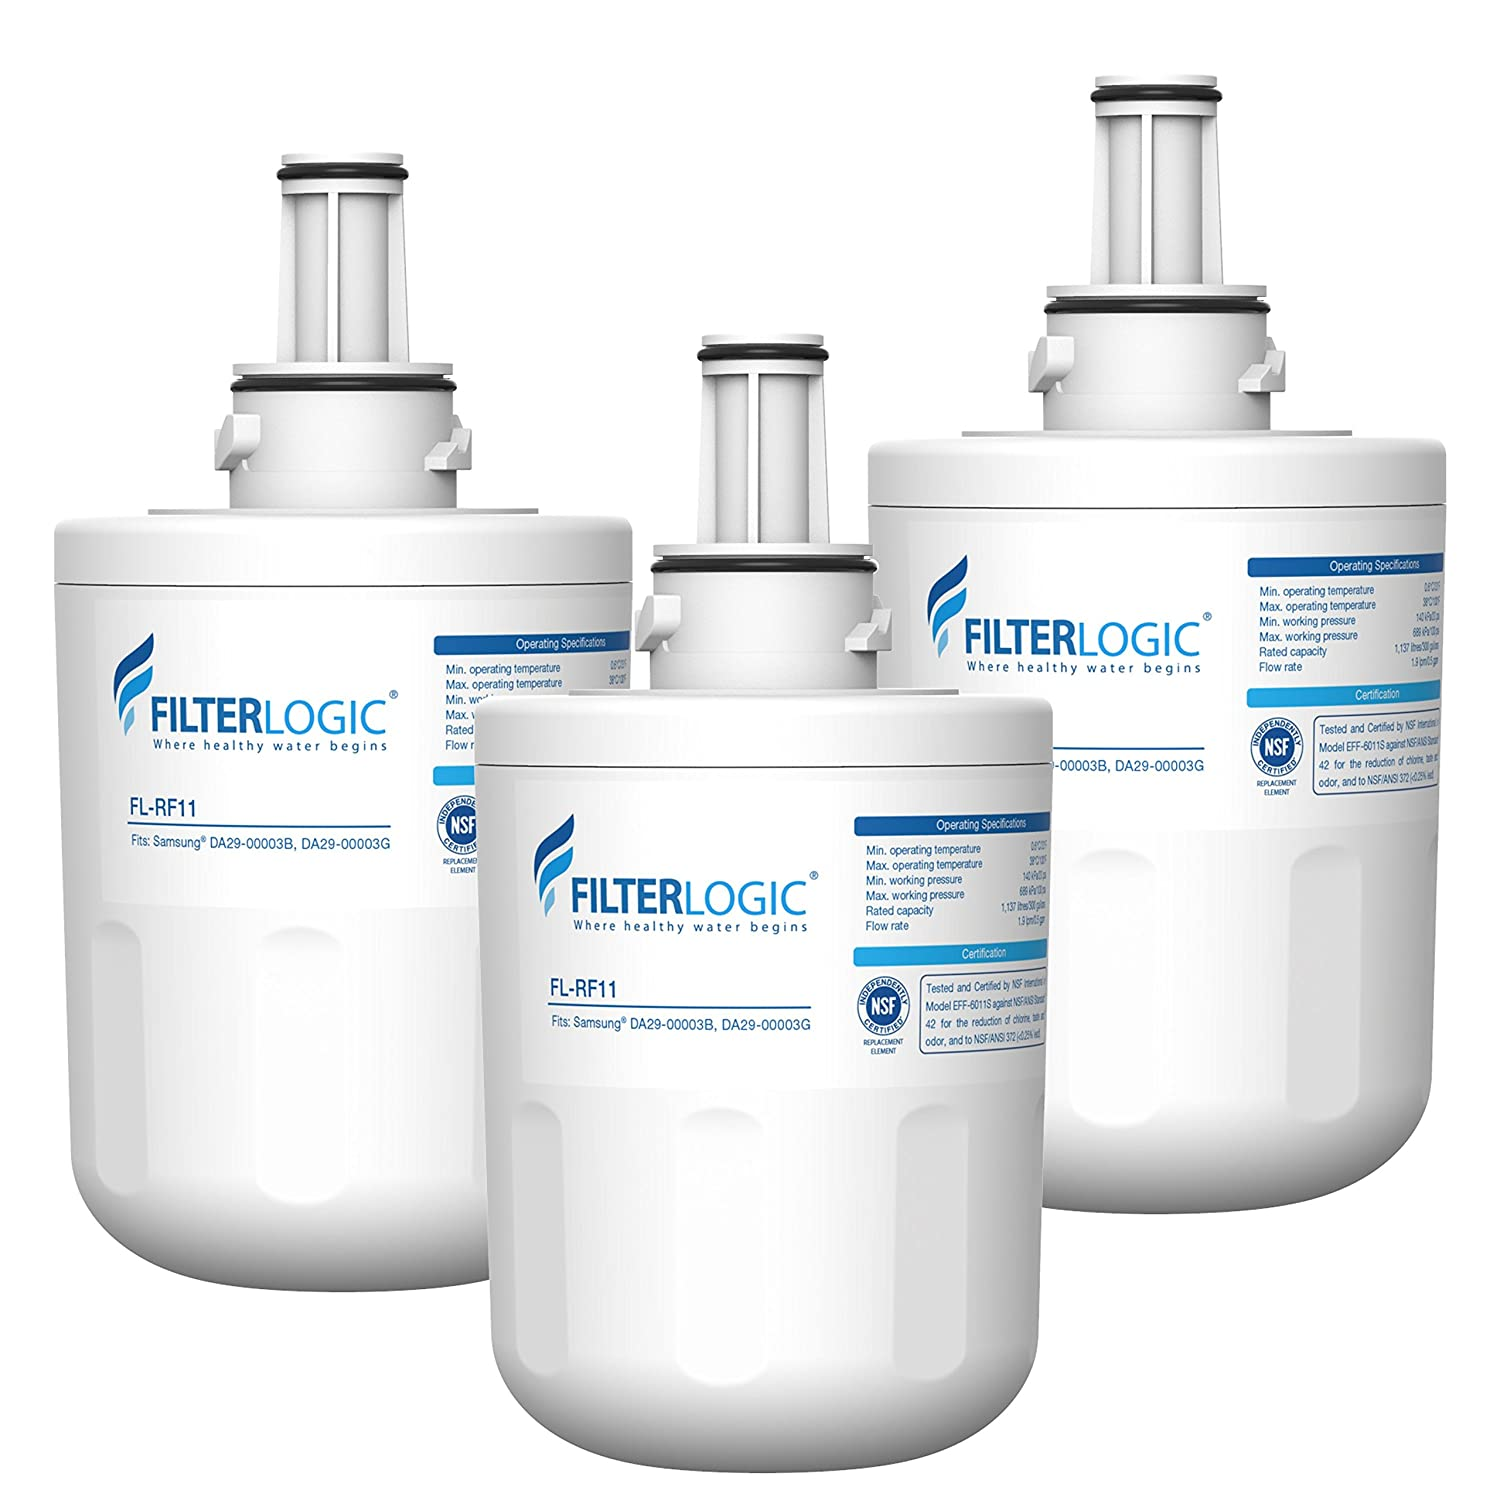 FilterLogic DA29-00003G Refrigerator Water Filter, Replacement for Samsung DA29-00003B, RSG257AARS, RFG237AARS, DA29-00003F, HAFCU1, RFG297AARS, RS22HDHPNSR, WSS-1, WFC2201 (Pack of 3)